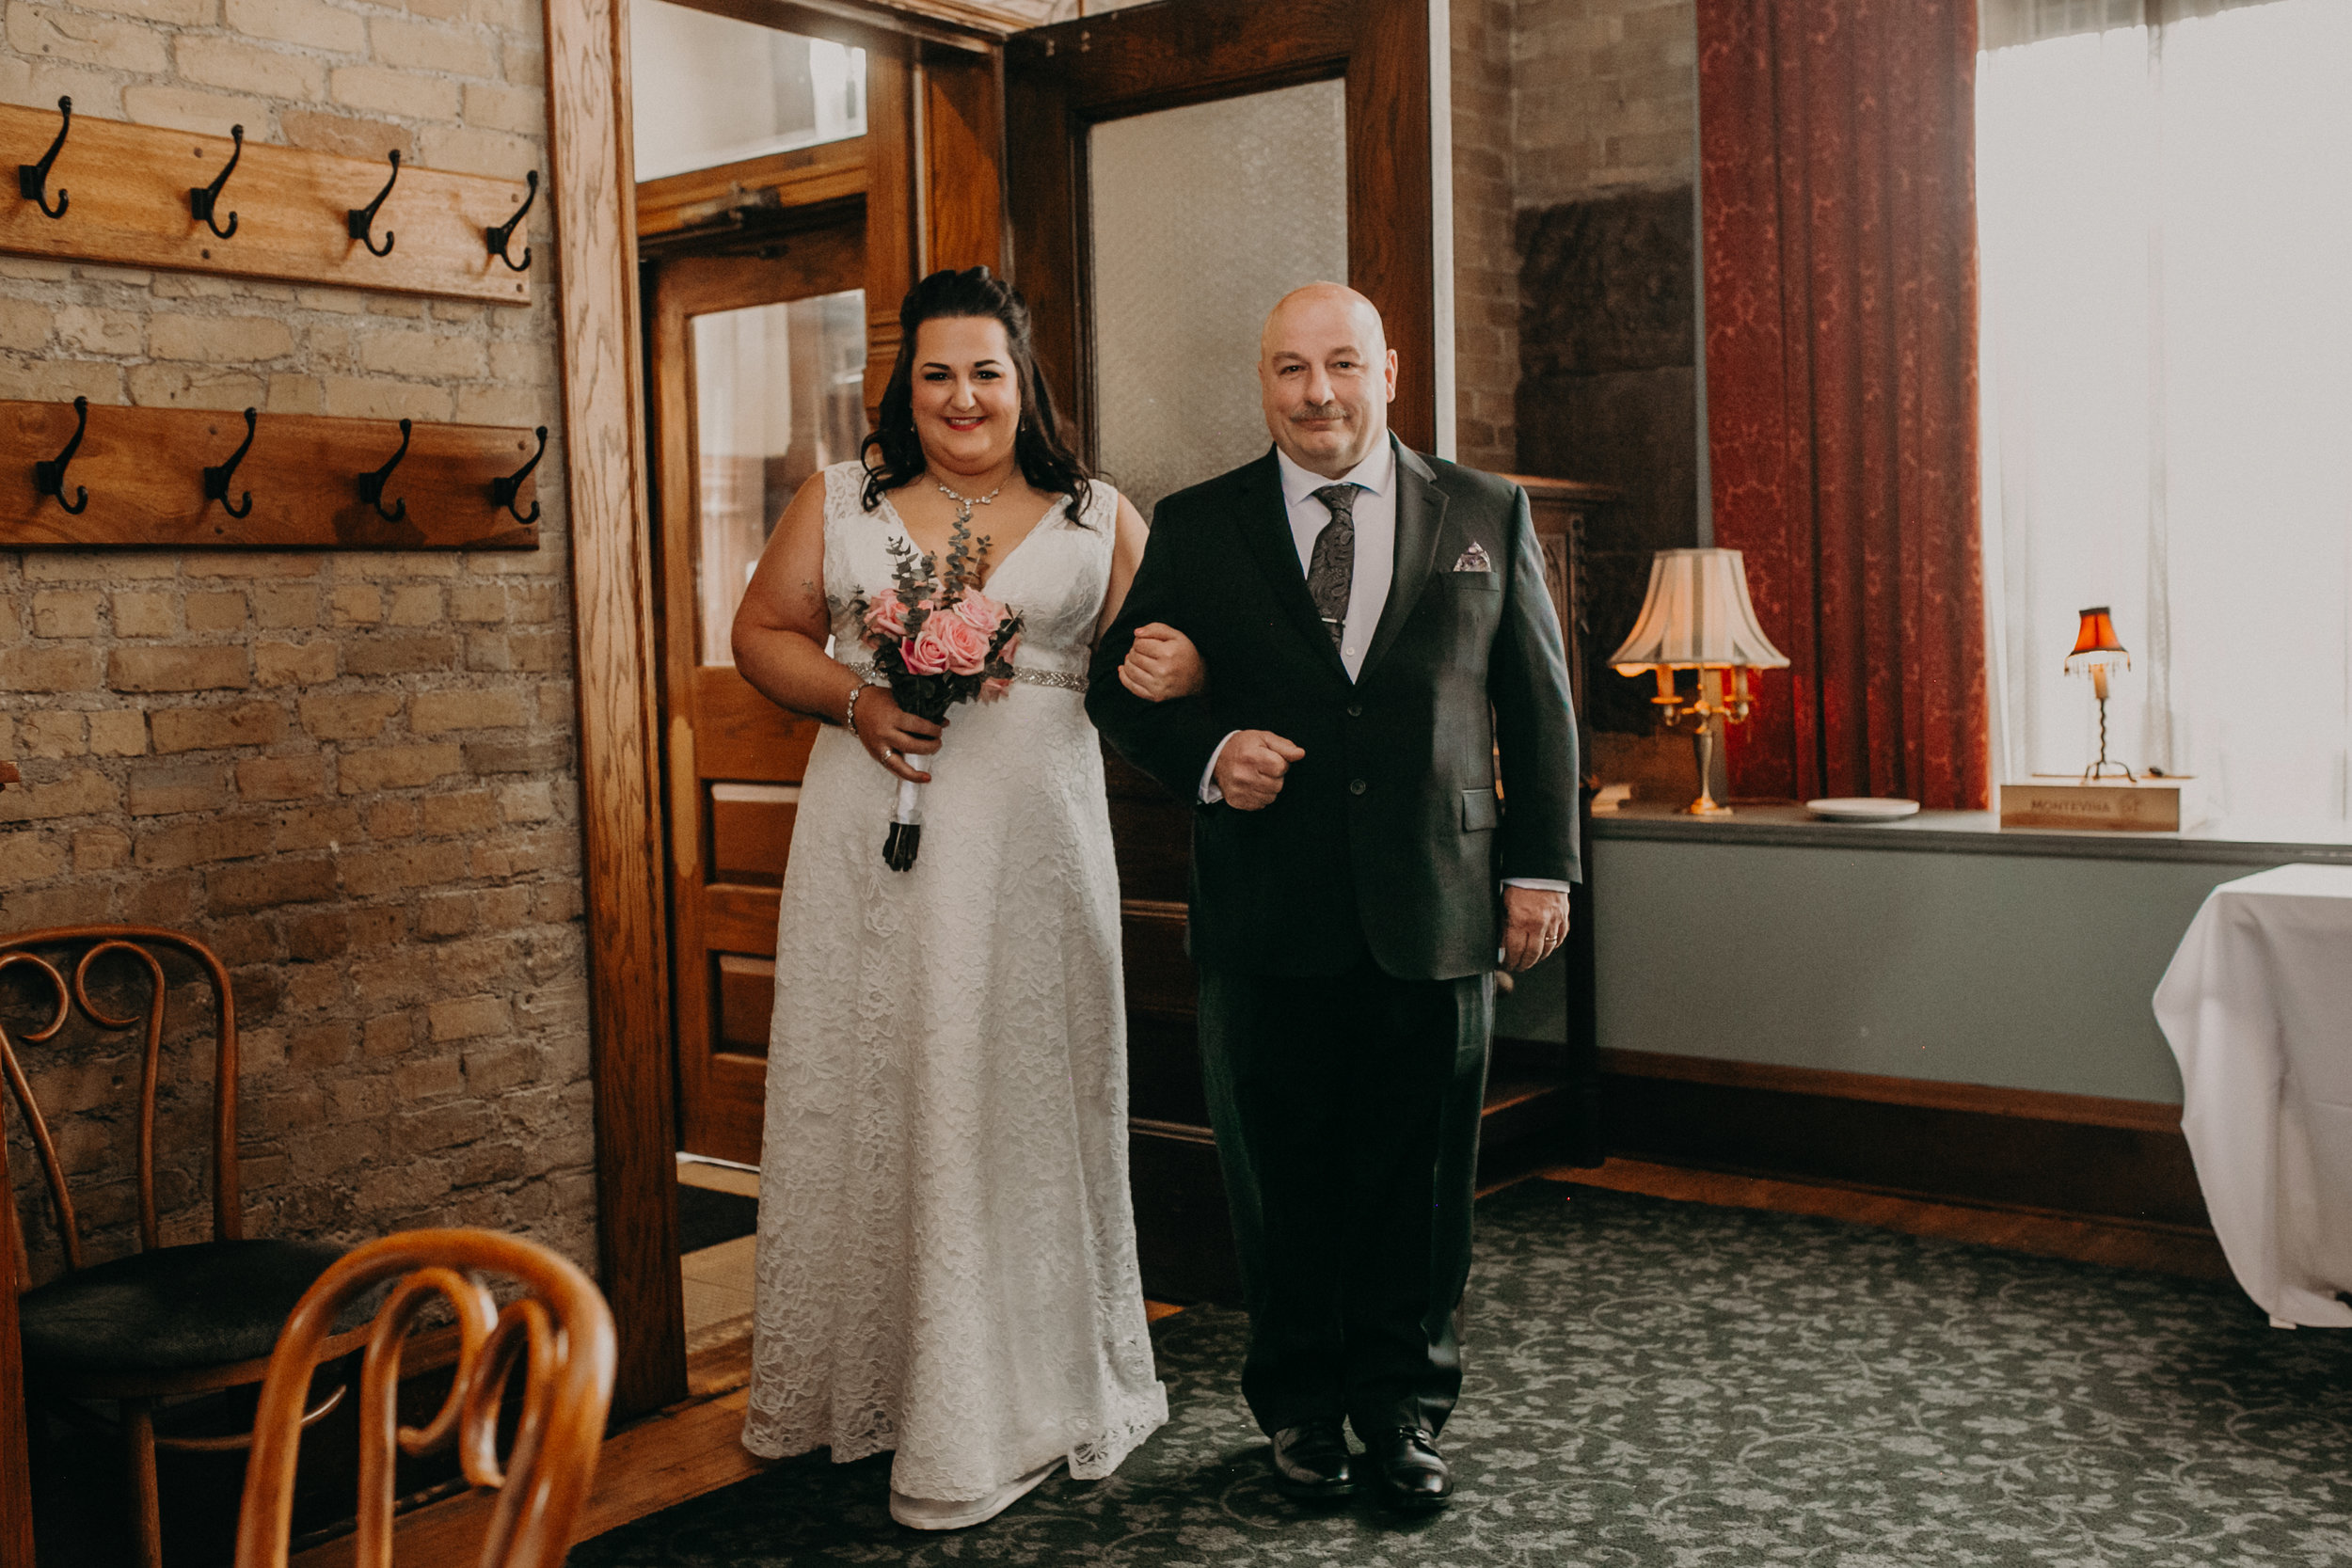 Intimate_Wedding_St_Paul_MN_WA_Frost_Sweeneys_Andrea_Wagner_Photography (42 of 99).jpg